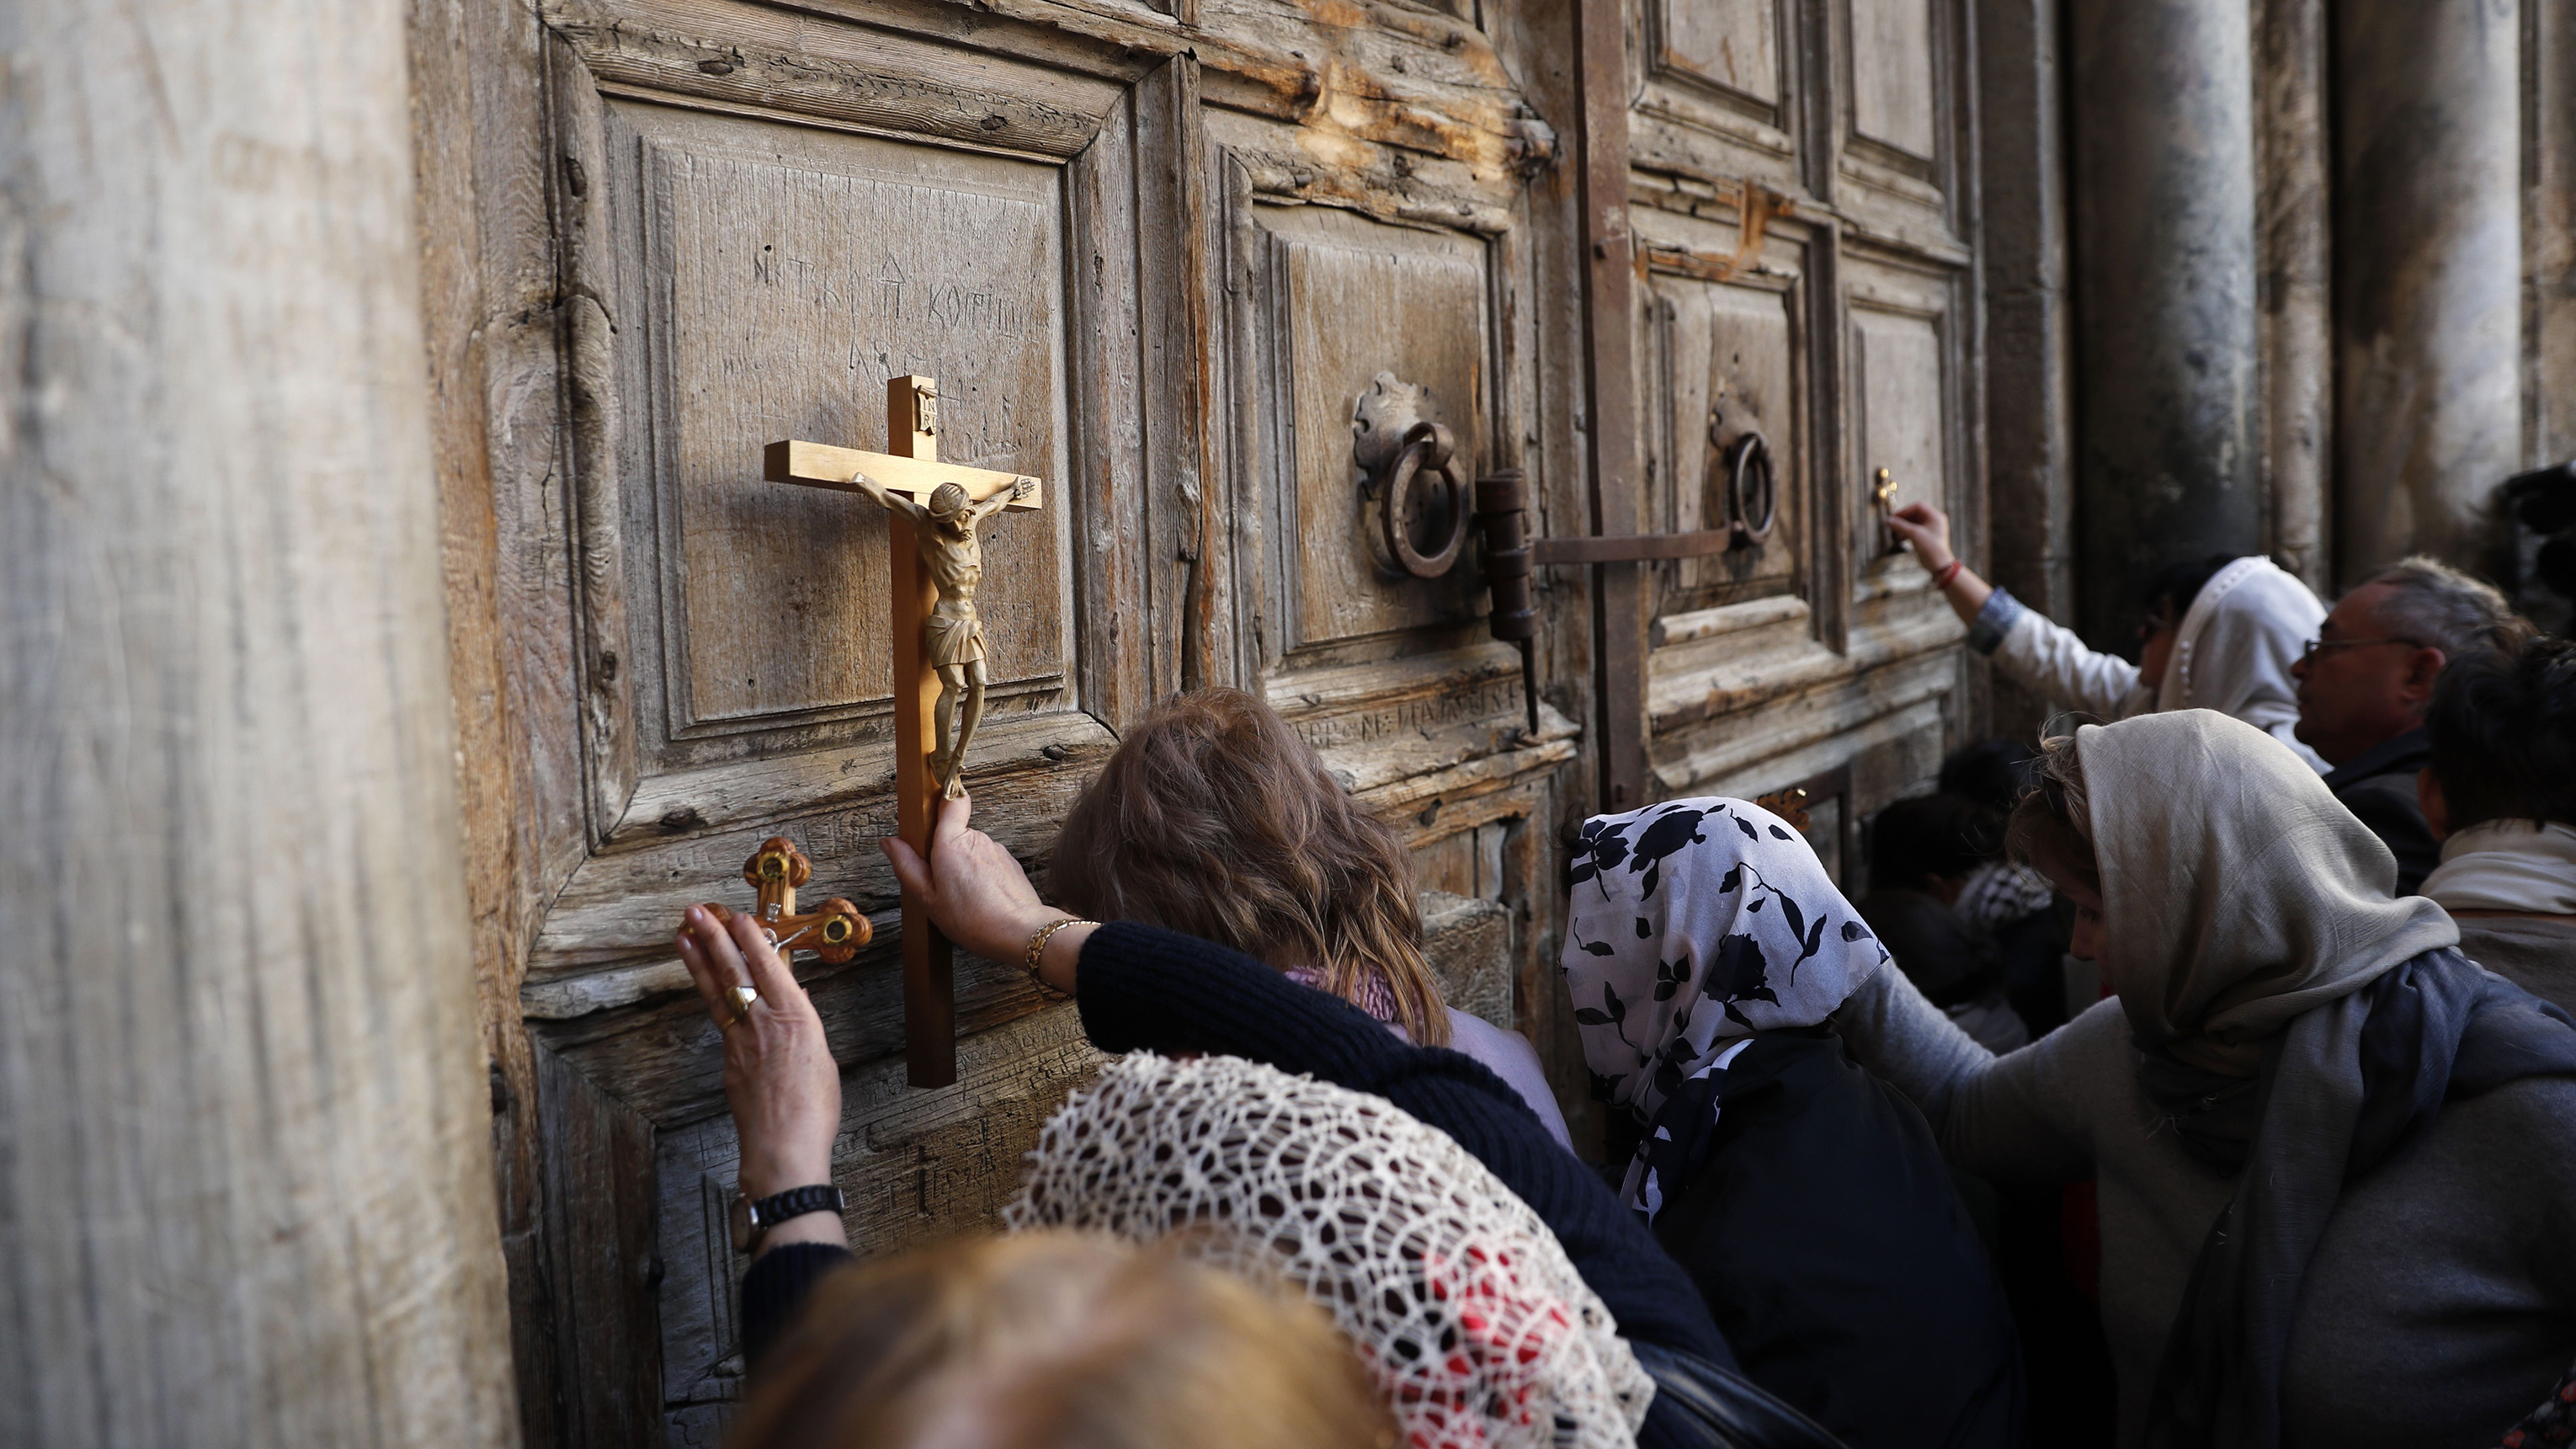 Holy Sepulchre Will Reopen After Jerusalem Suspends Church Tax Grab